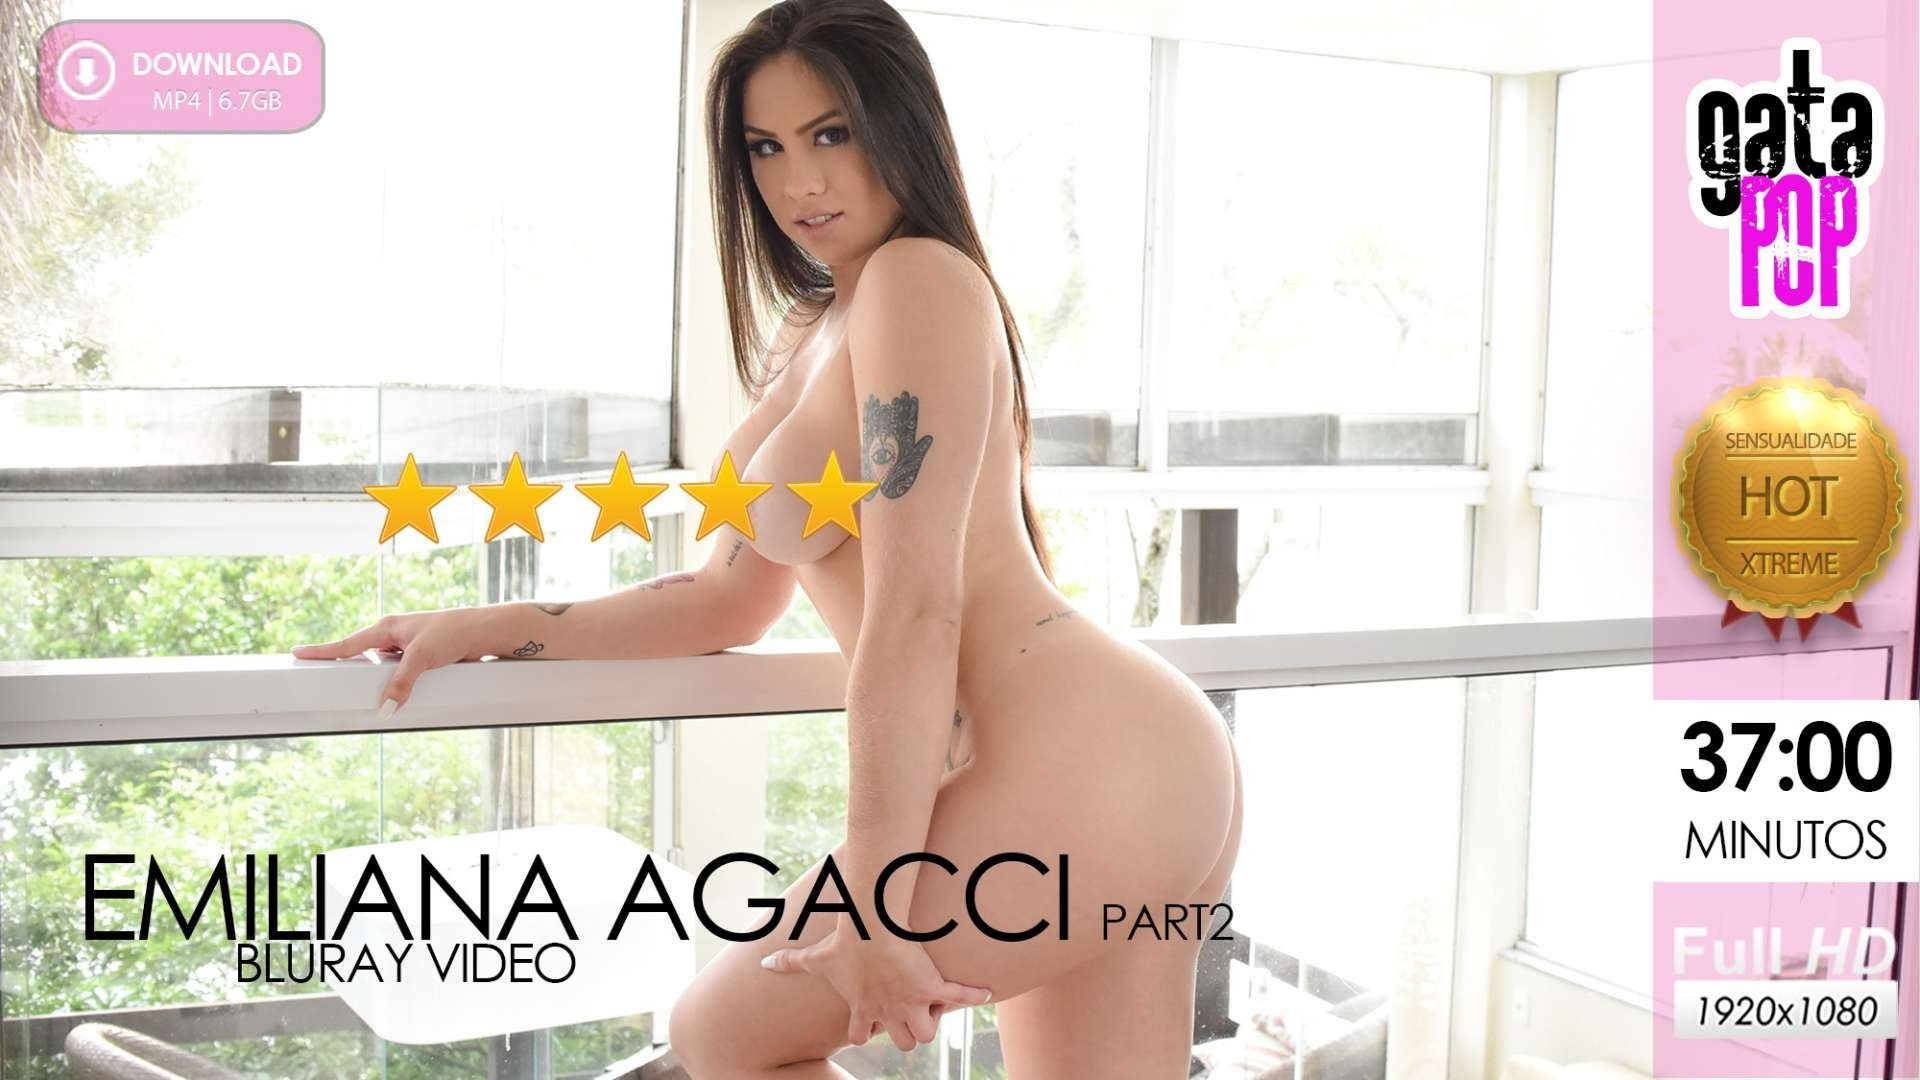 Emiliana Agacci - Part2 - Bluray